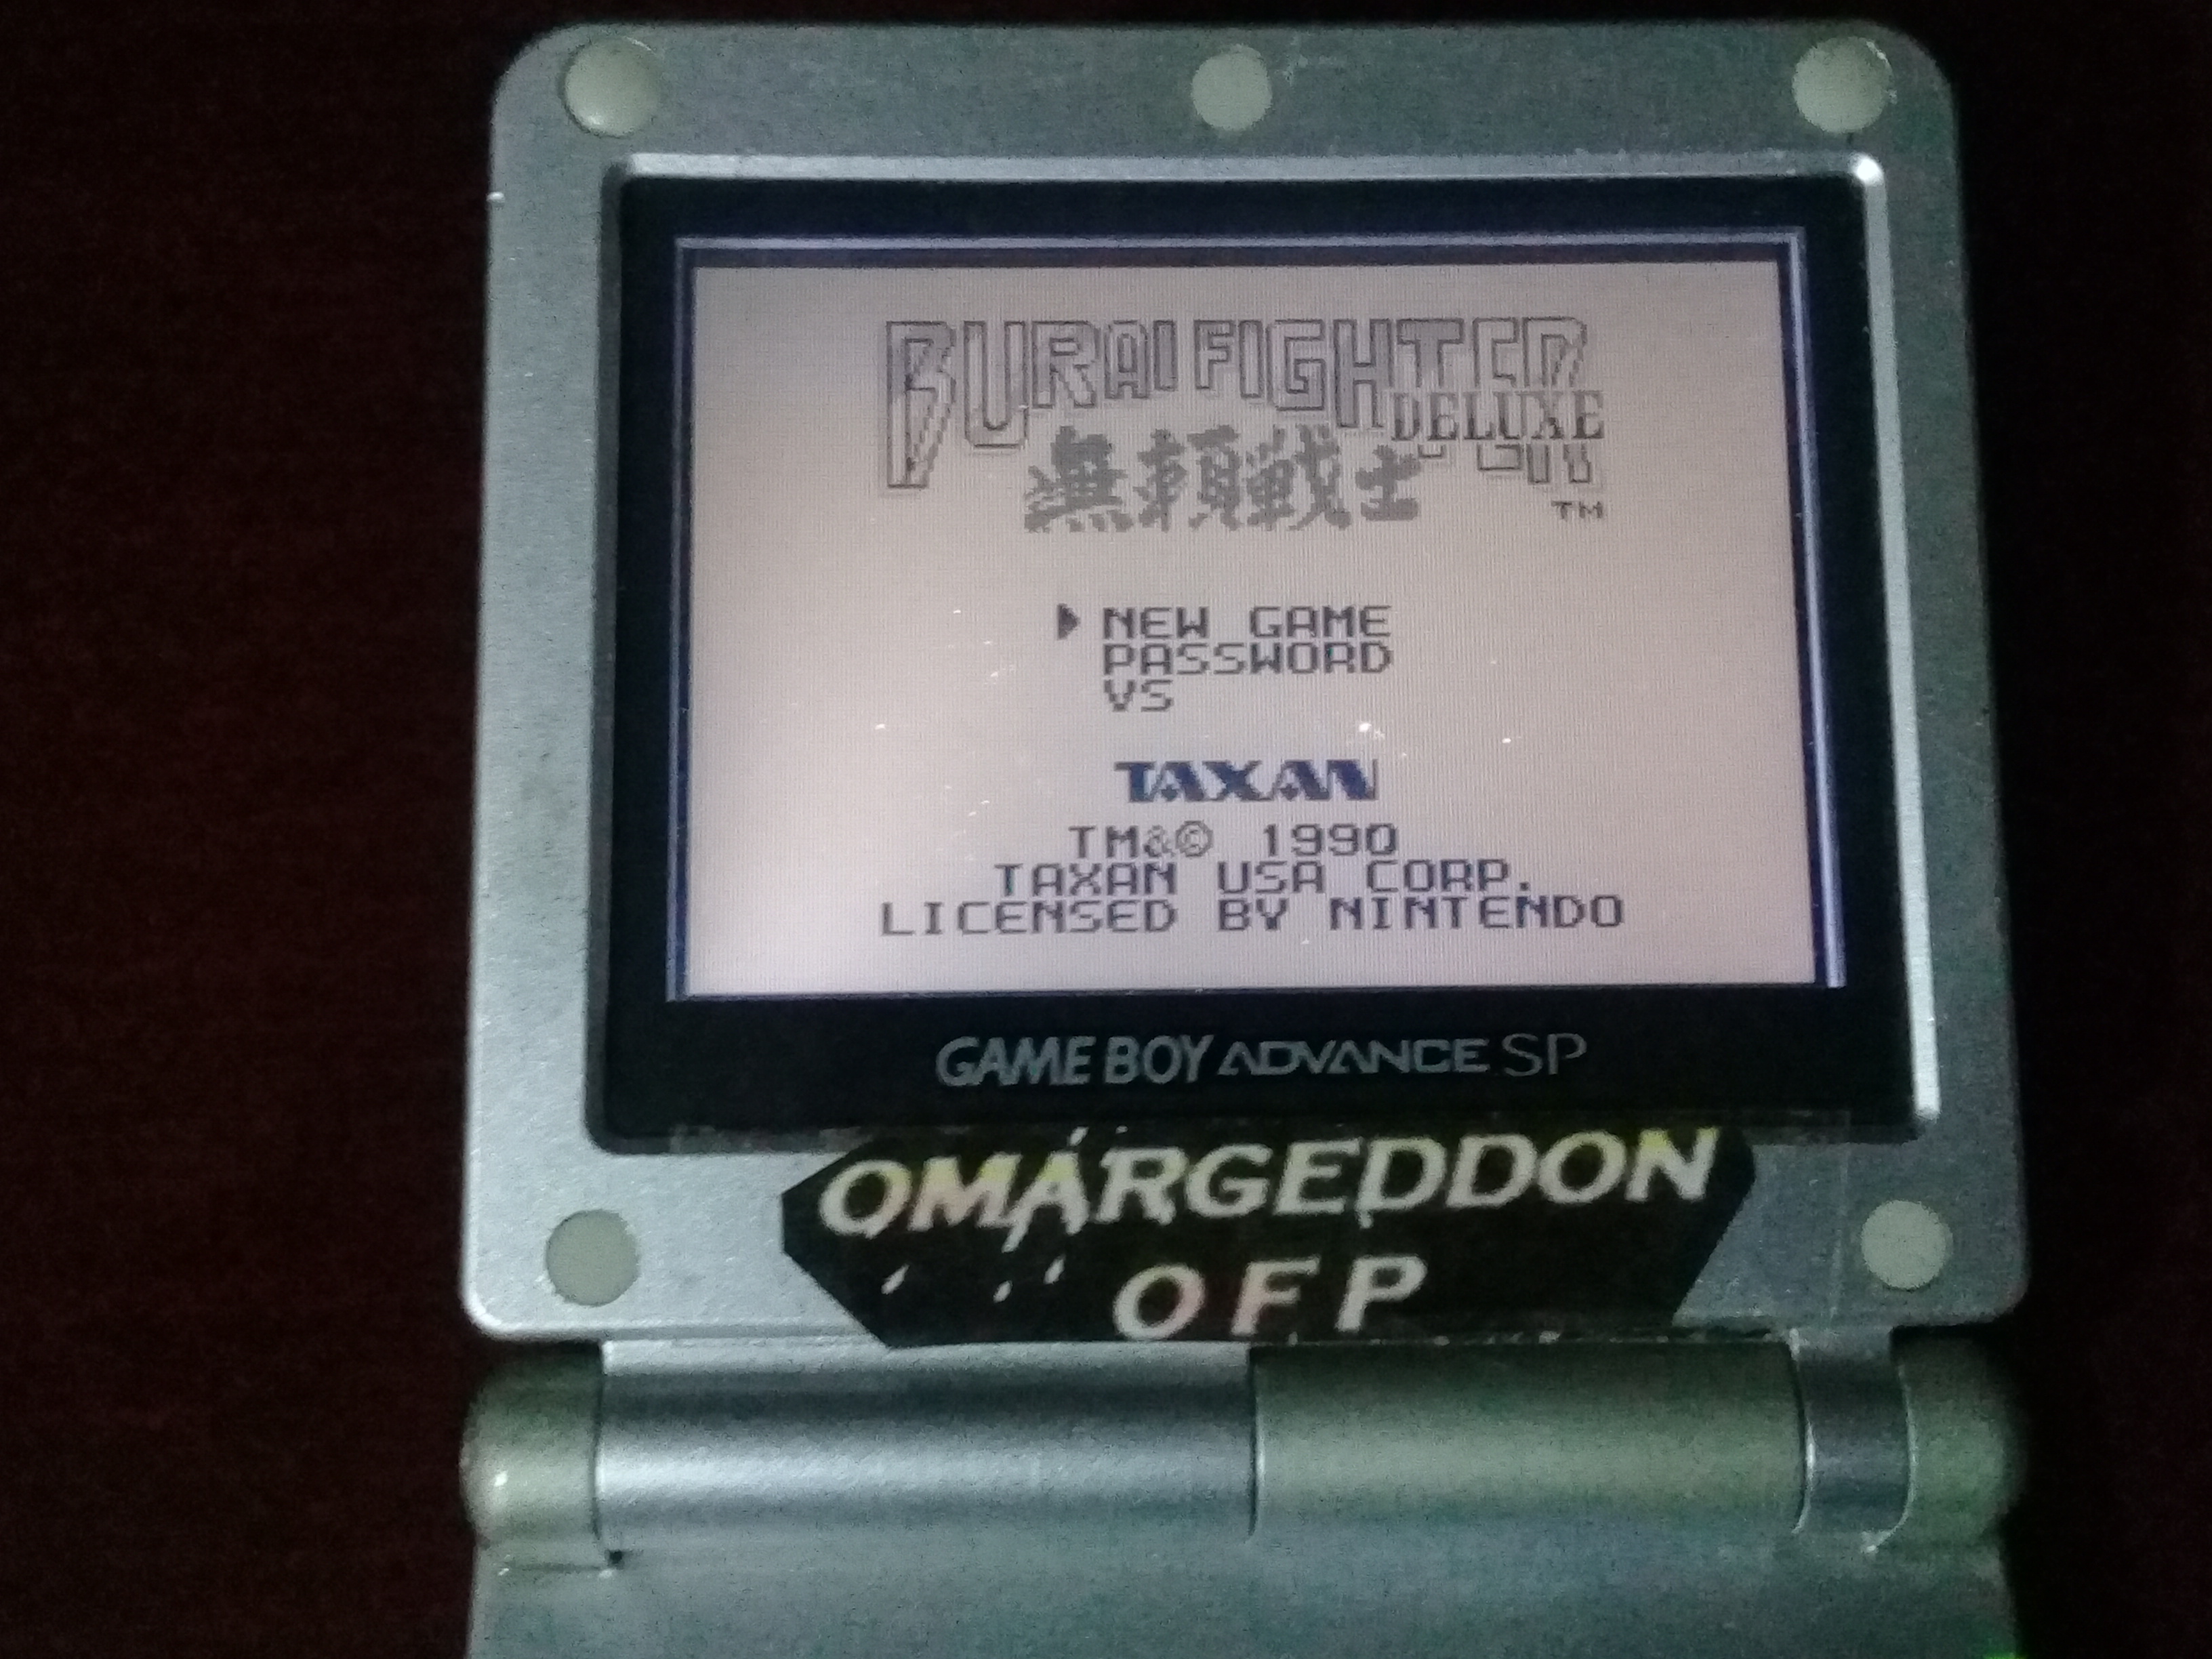 omargeddon: Burai Fighter Deluxe (Game Boy) 161,640 points on 2018-12-13 19:24:32